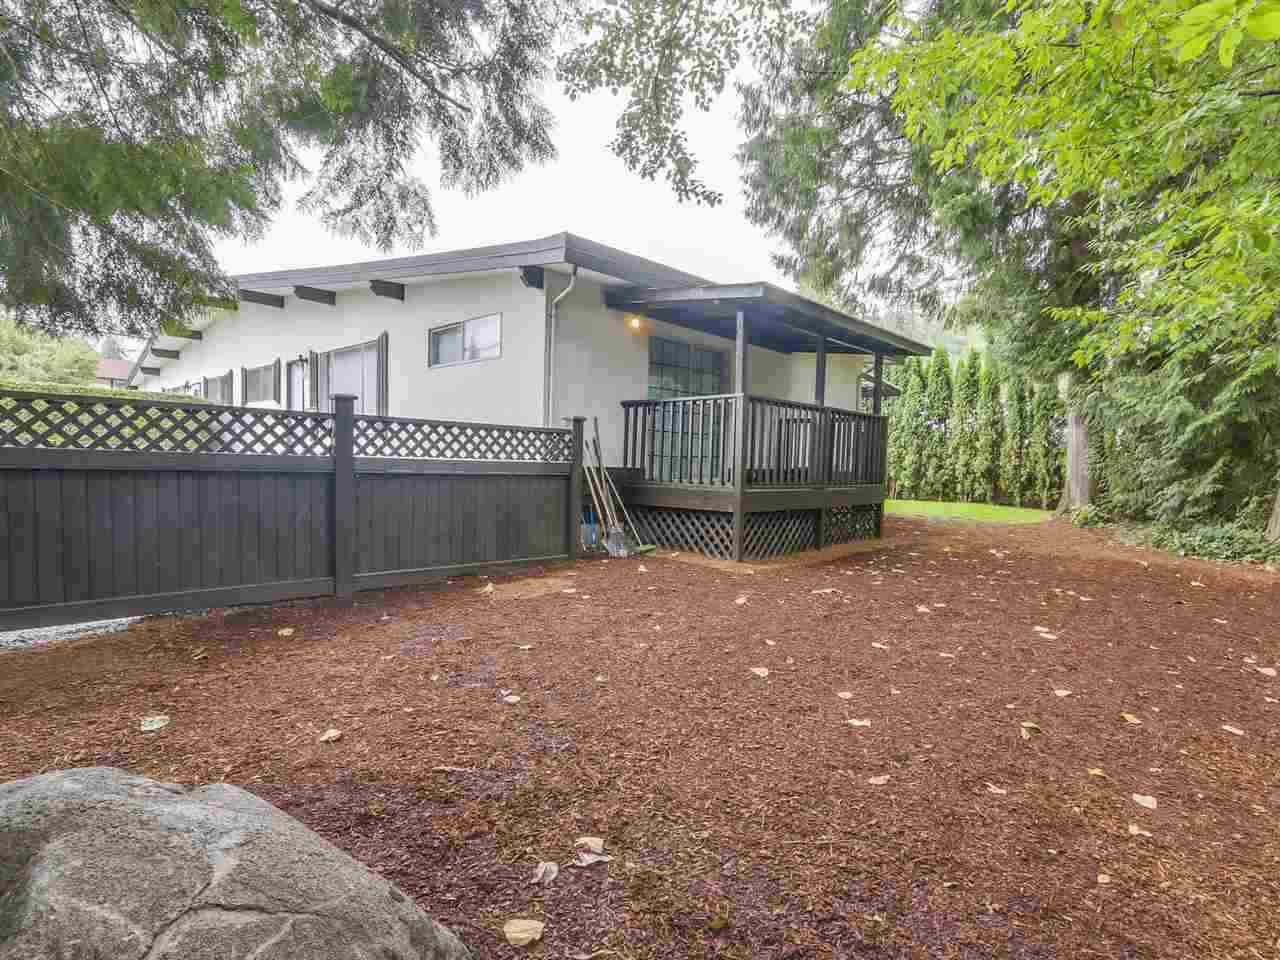 """Photo 2: Photos: 1673 GREENMOUNT Avenue in Port Coquitlam: Oxford Heights 1/2 Duplex for sale in """"OXFORD HEIGHTS"""" : MLS®# R2221936"""